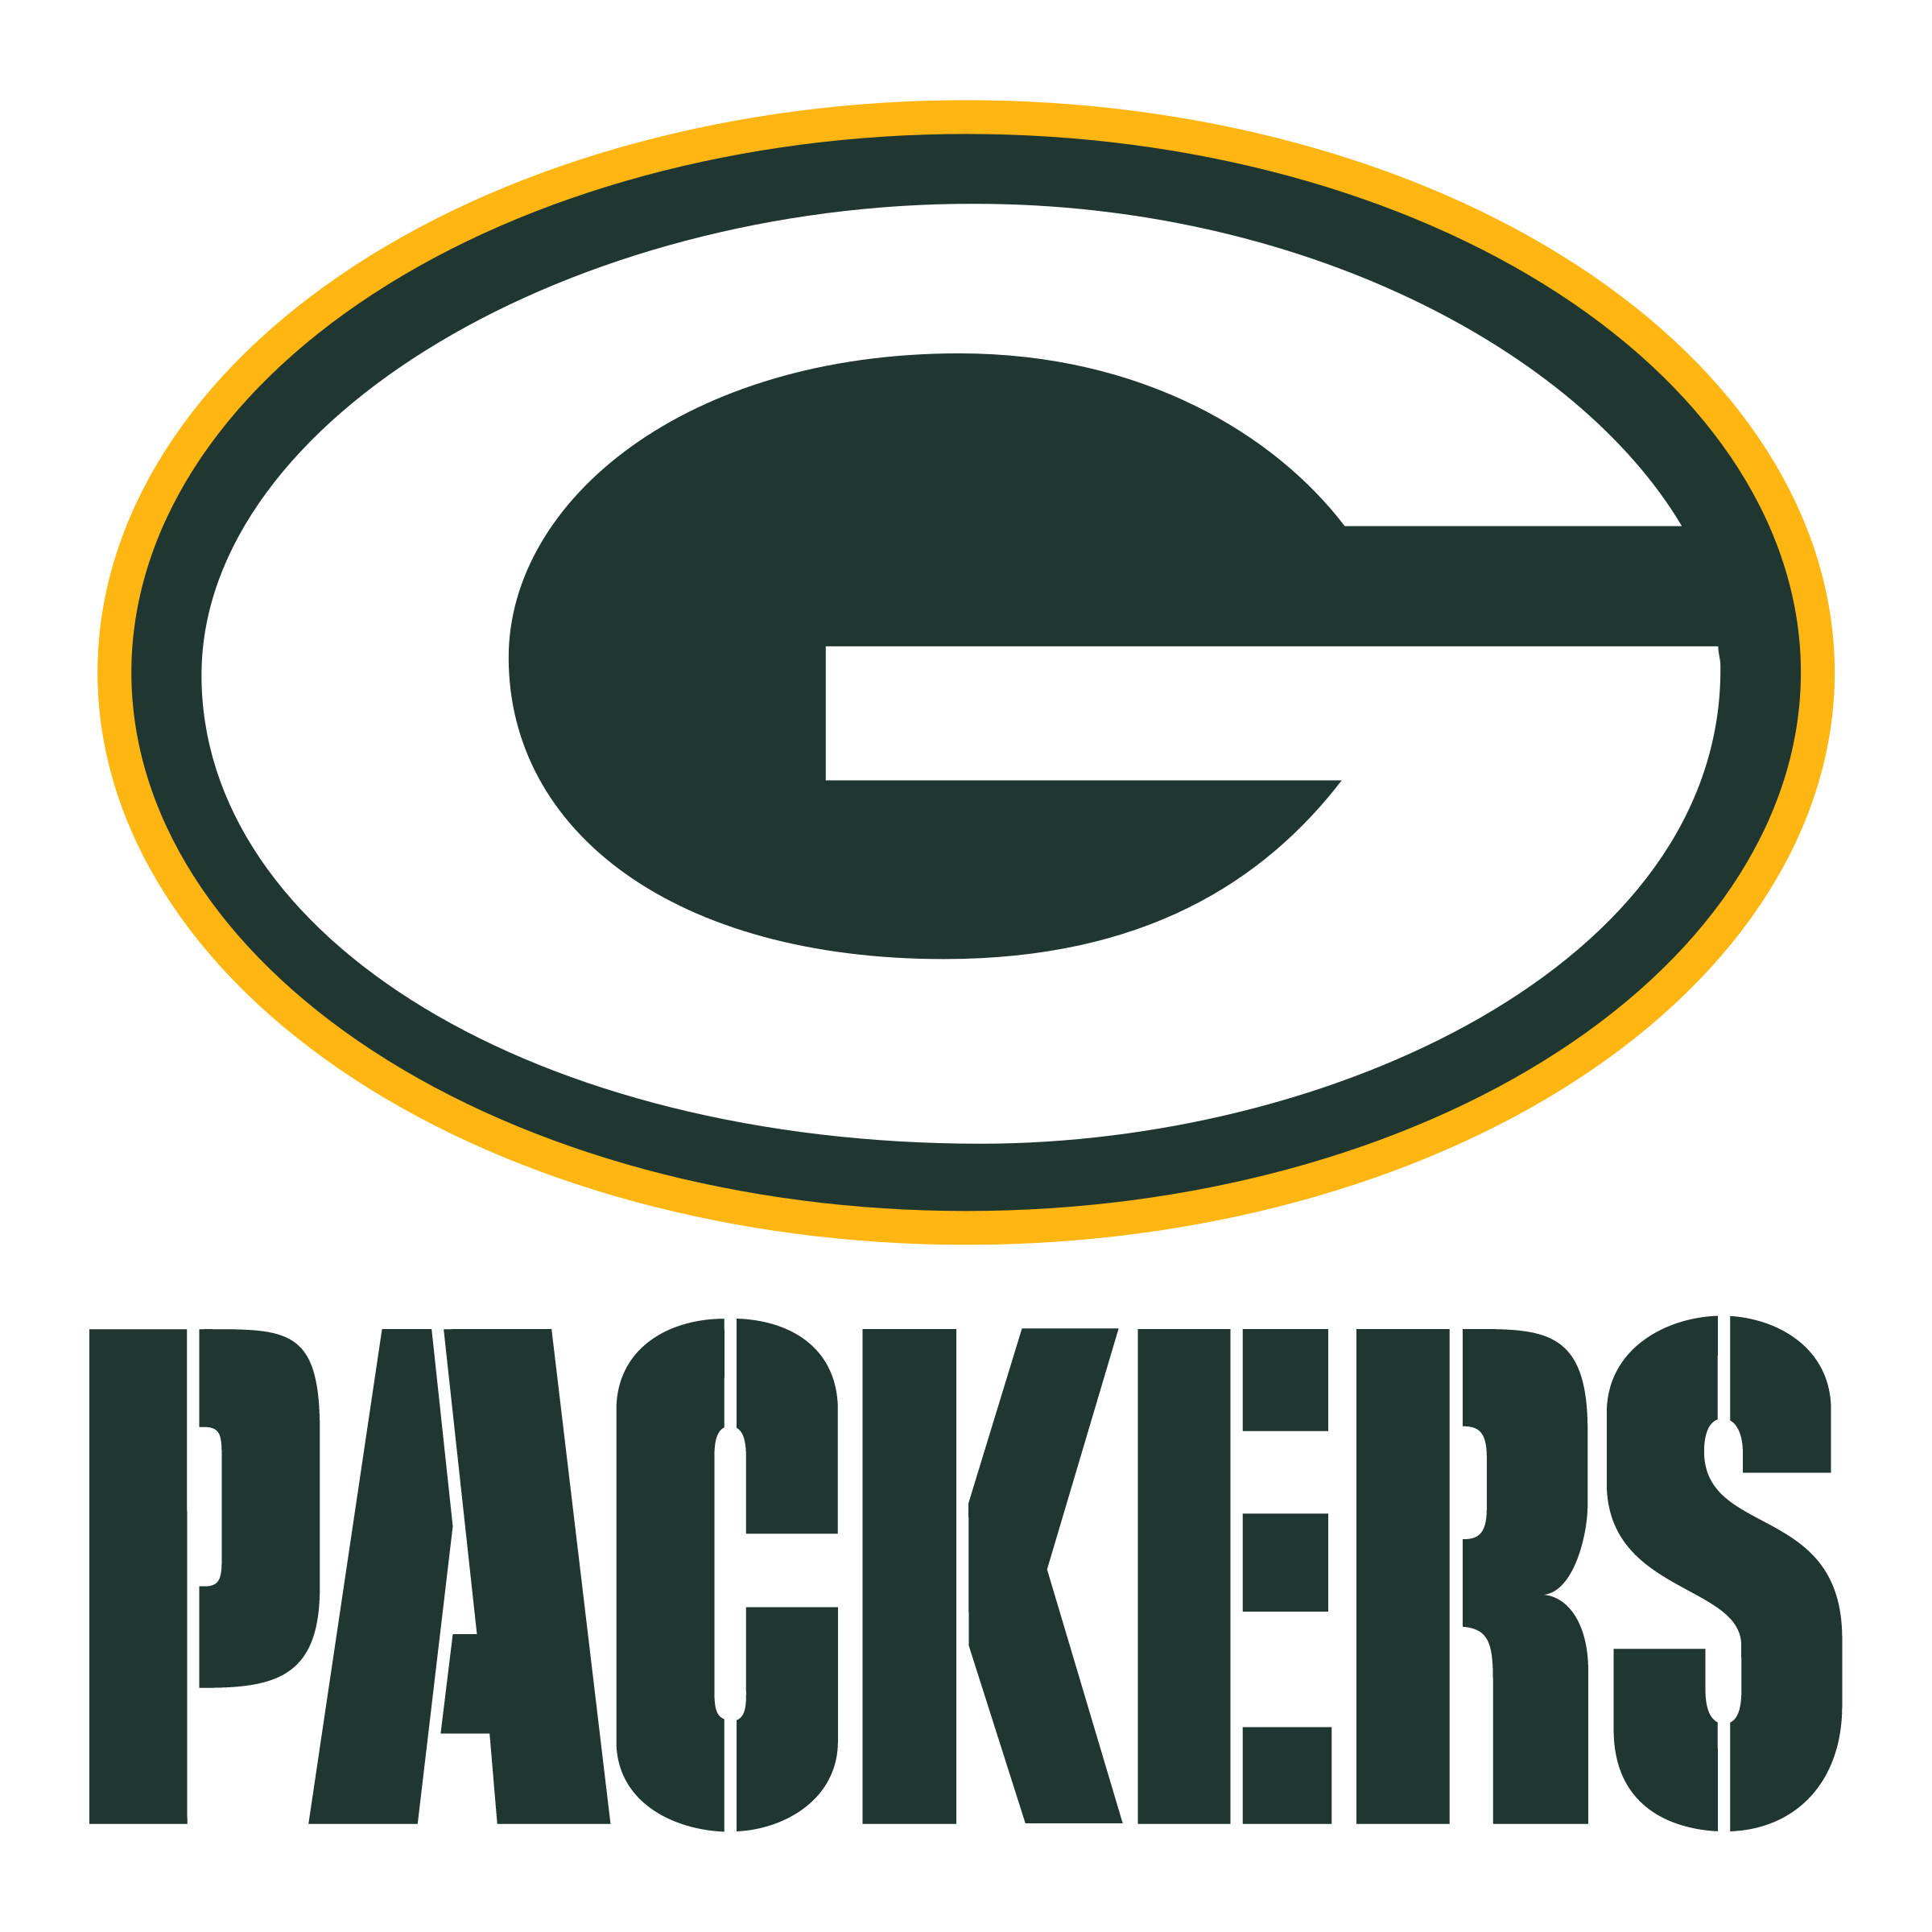 Green bay packers logo png. Transparent svg vector freebie